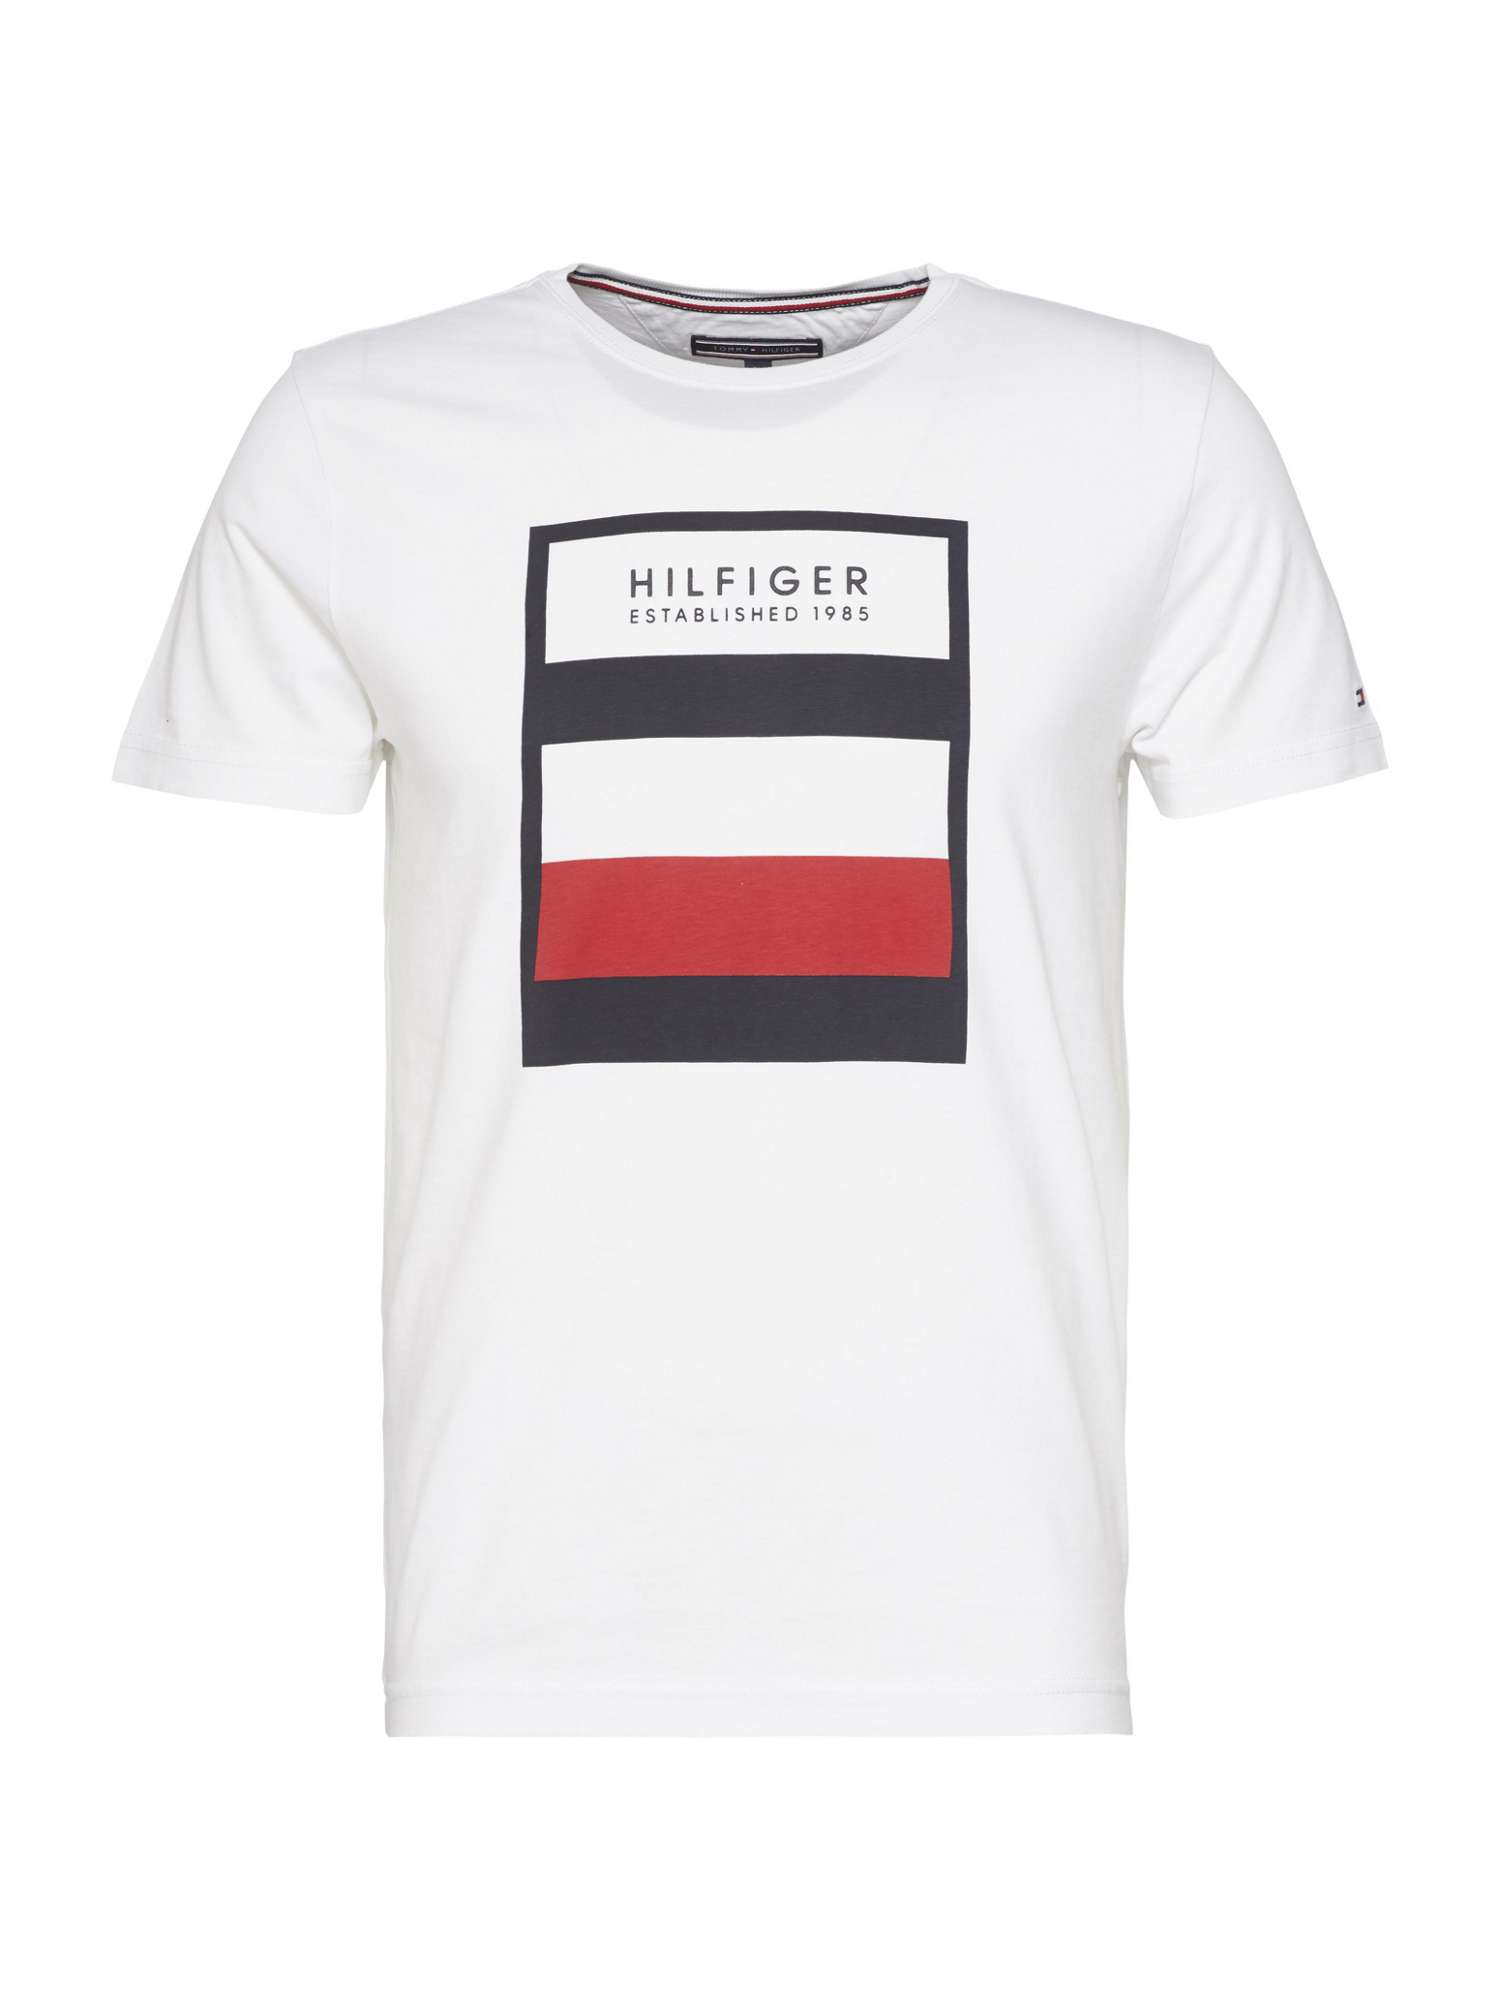 Tommy Hillfiger Norman Logo T Shirt £36